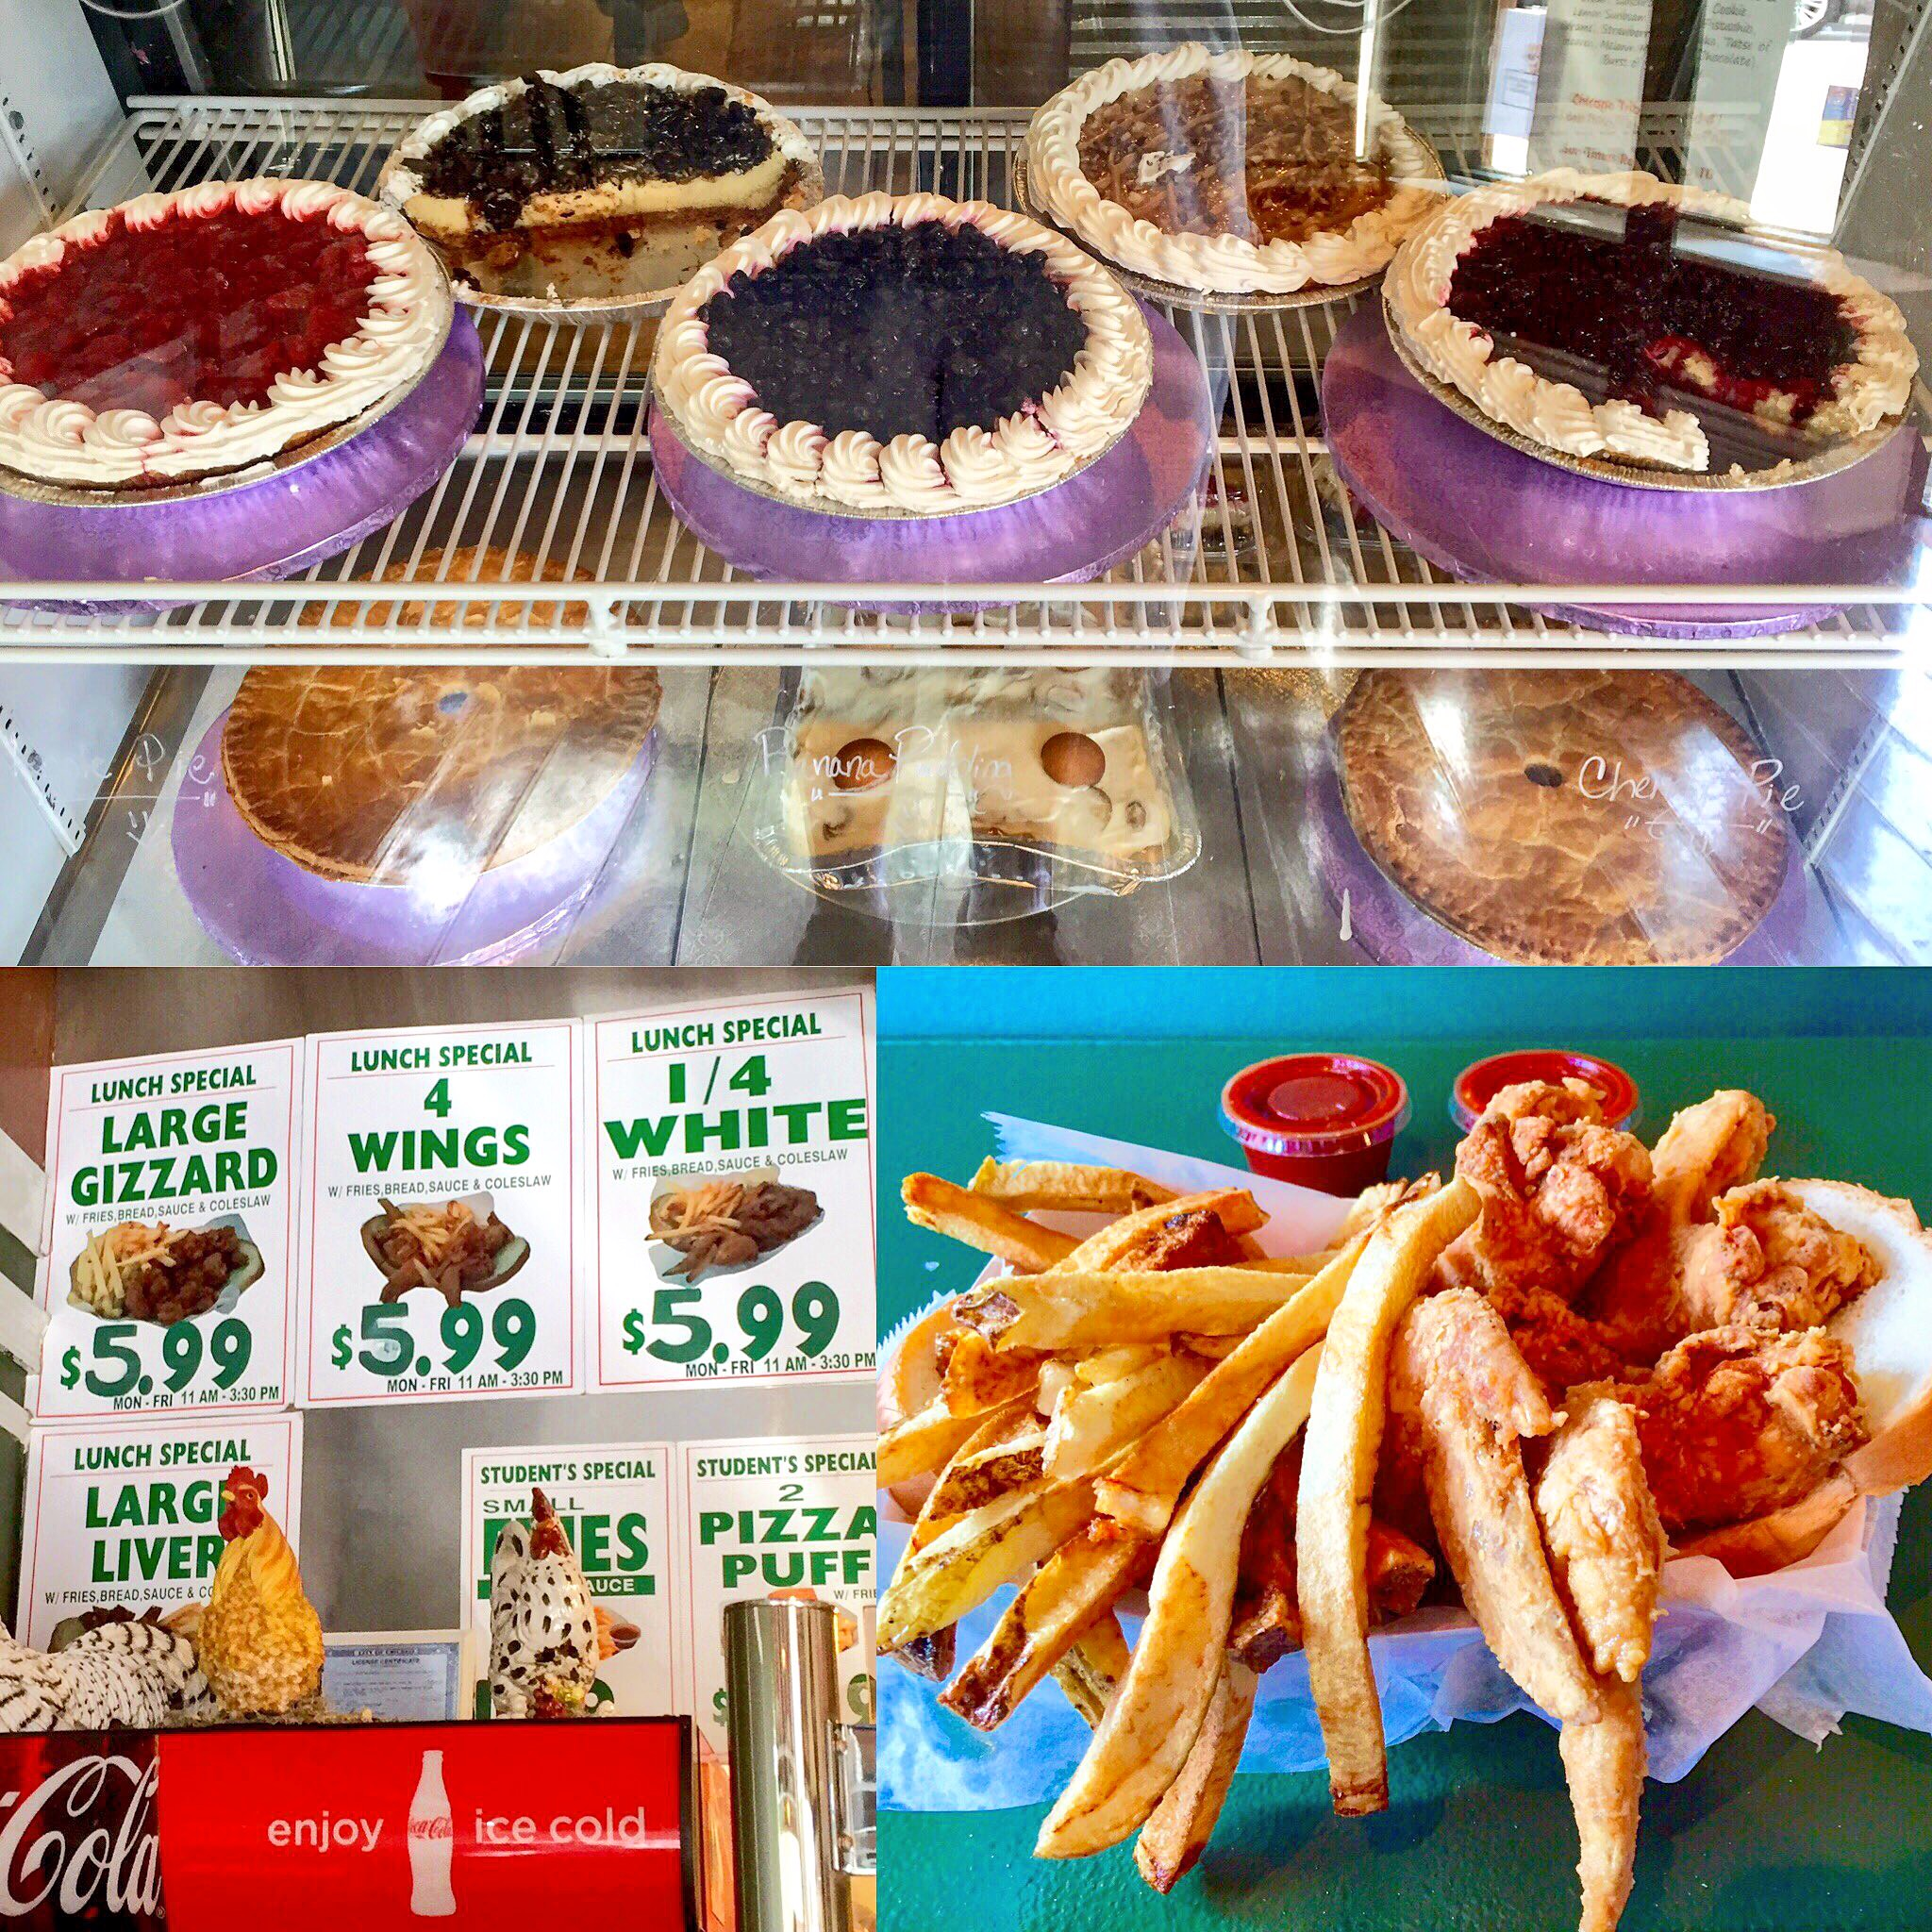 Pies, Fried Chicken, Fries, and Ice Cream... OH MY!